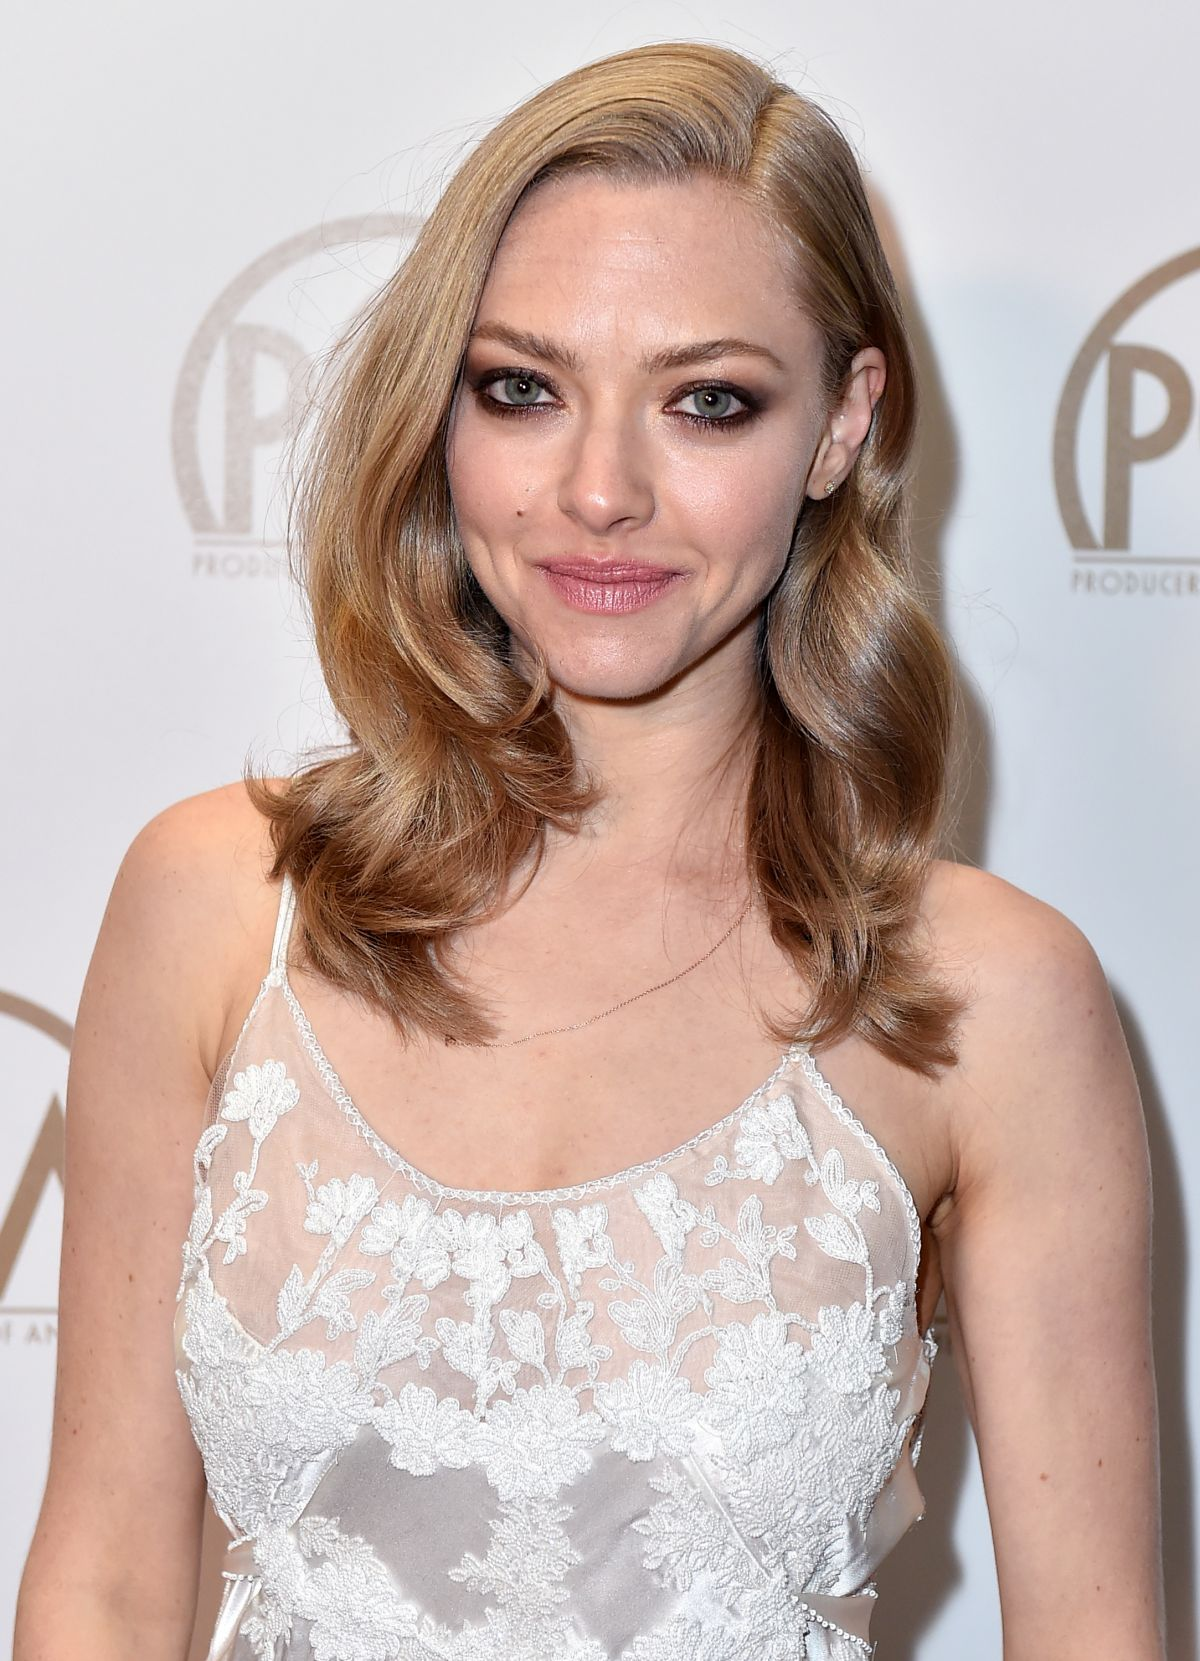 AMANDA SEYFRIED at 27th Annual Producers Guild Awards in Los Angeles 01/23/2016